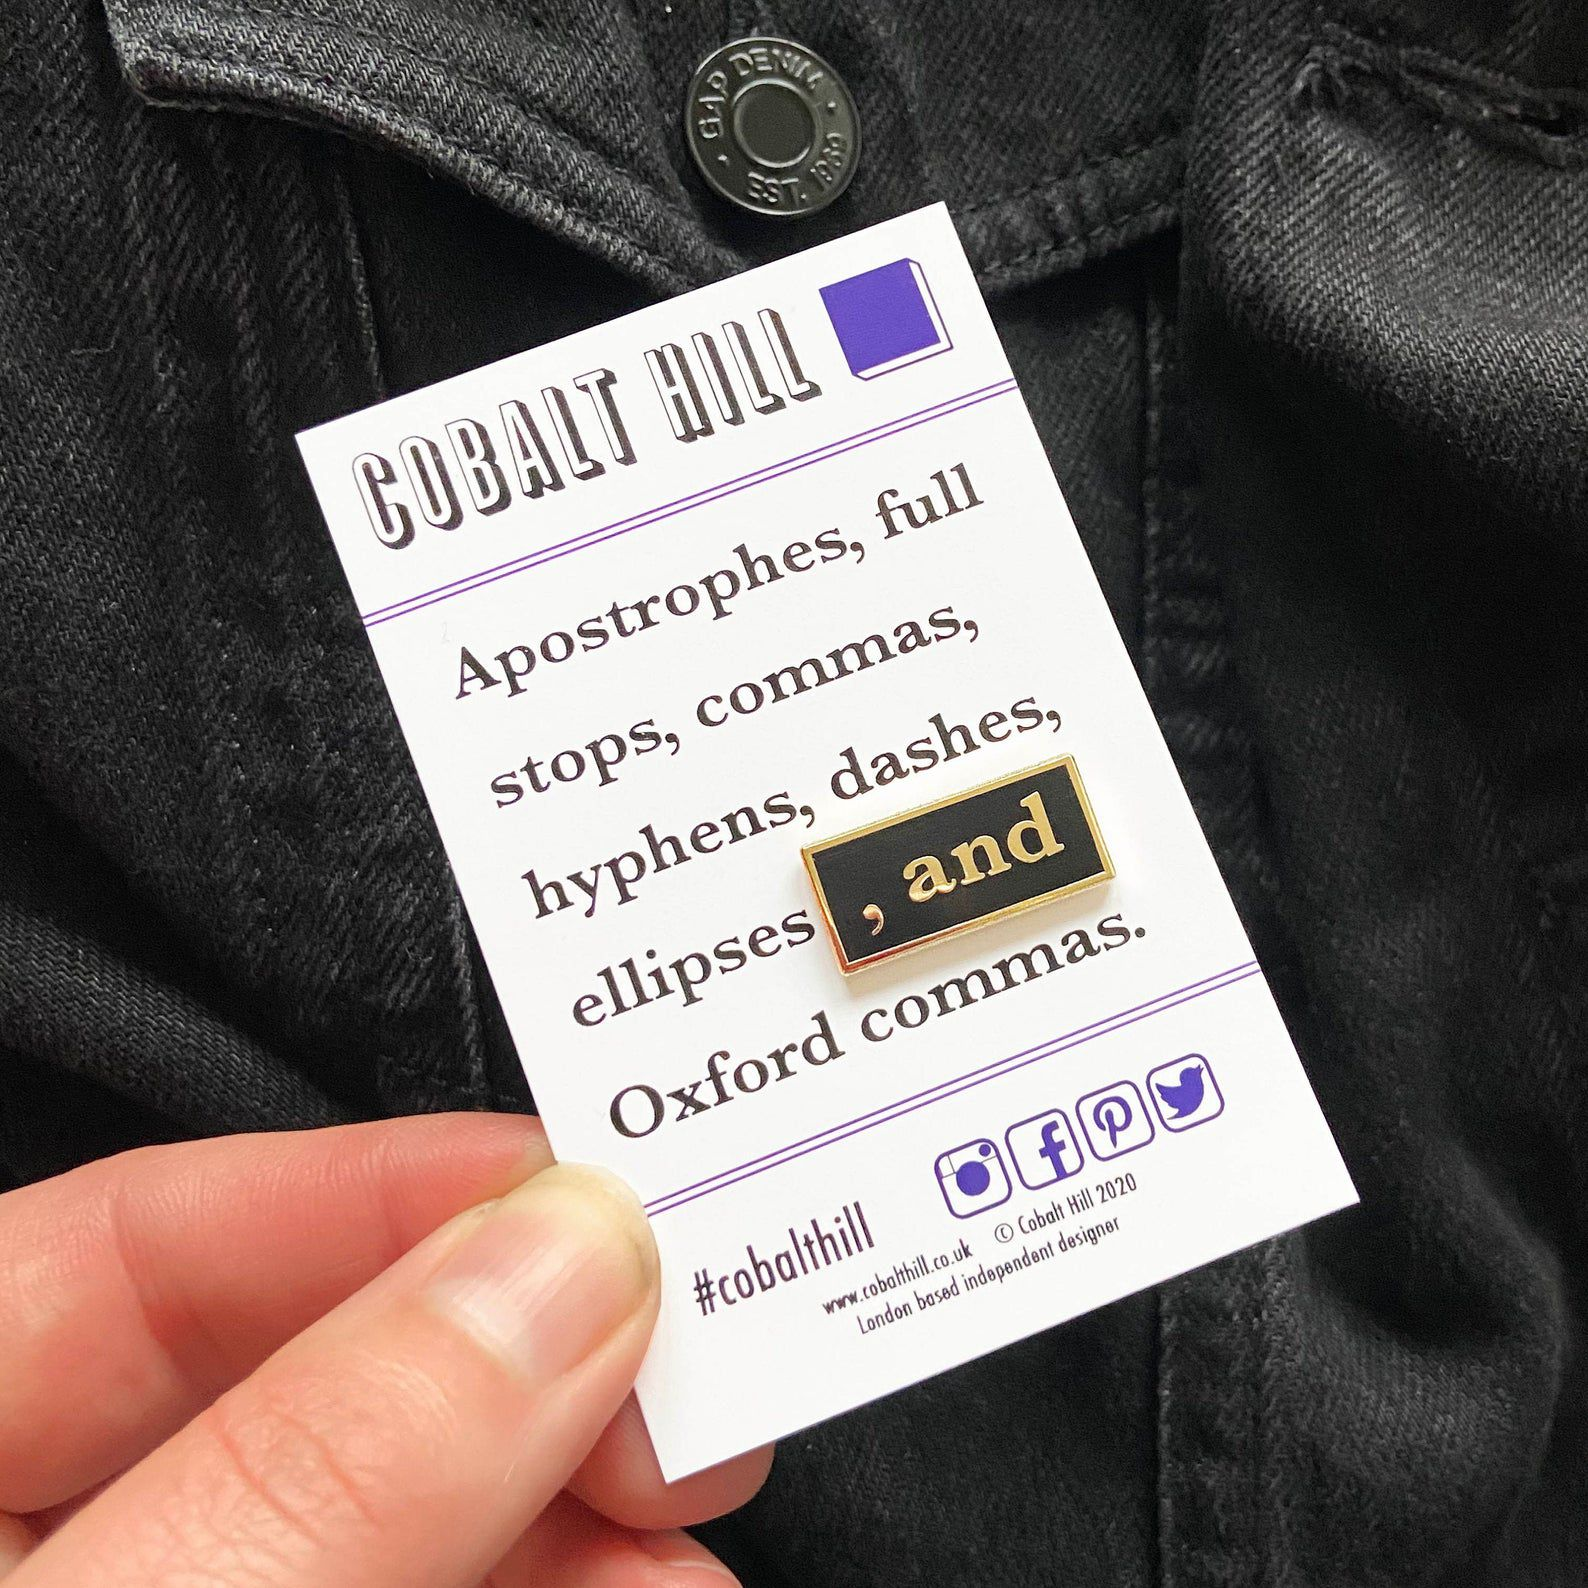 """The pin reads """" , and"""". It is on a cardboard backing that reads """"Cobalt Hill: Apostrophes, full stops, commas, hyphens, dashes, ellipses, and Oxford commas."""""""